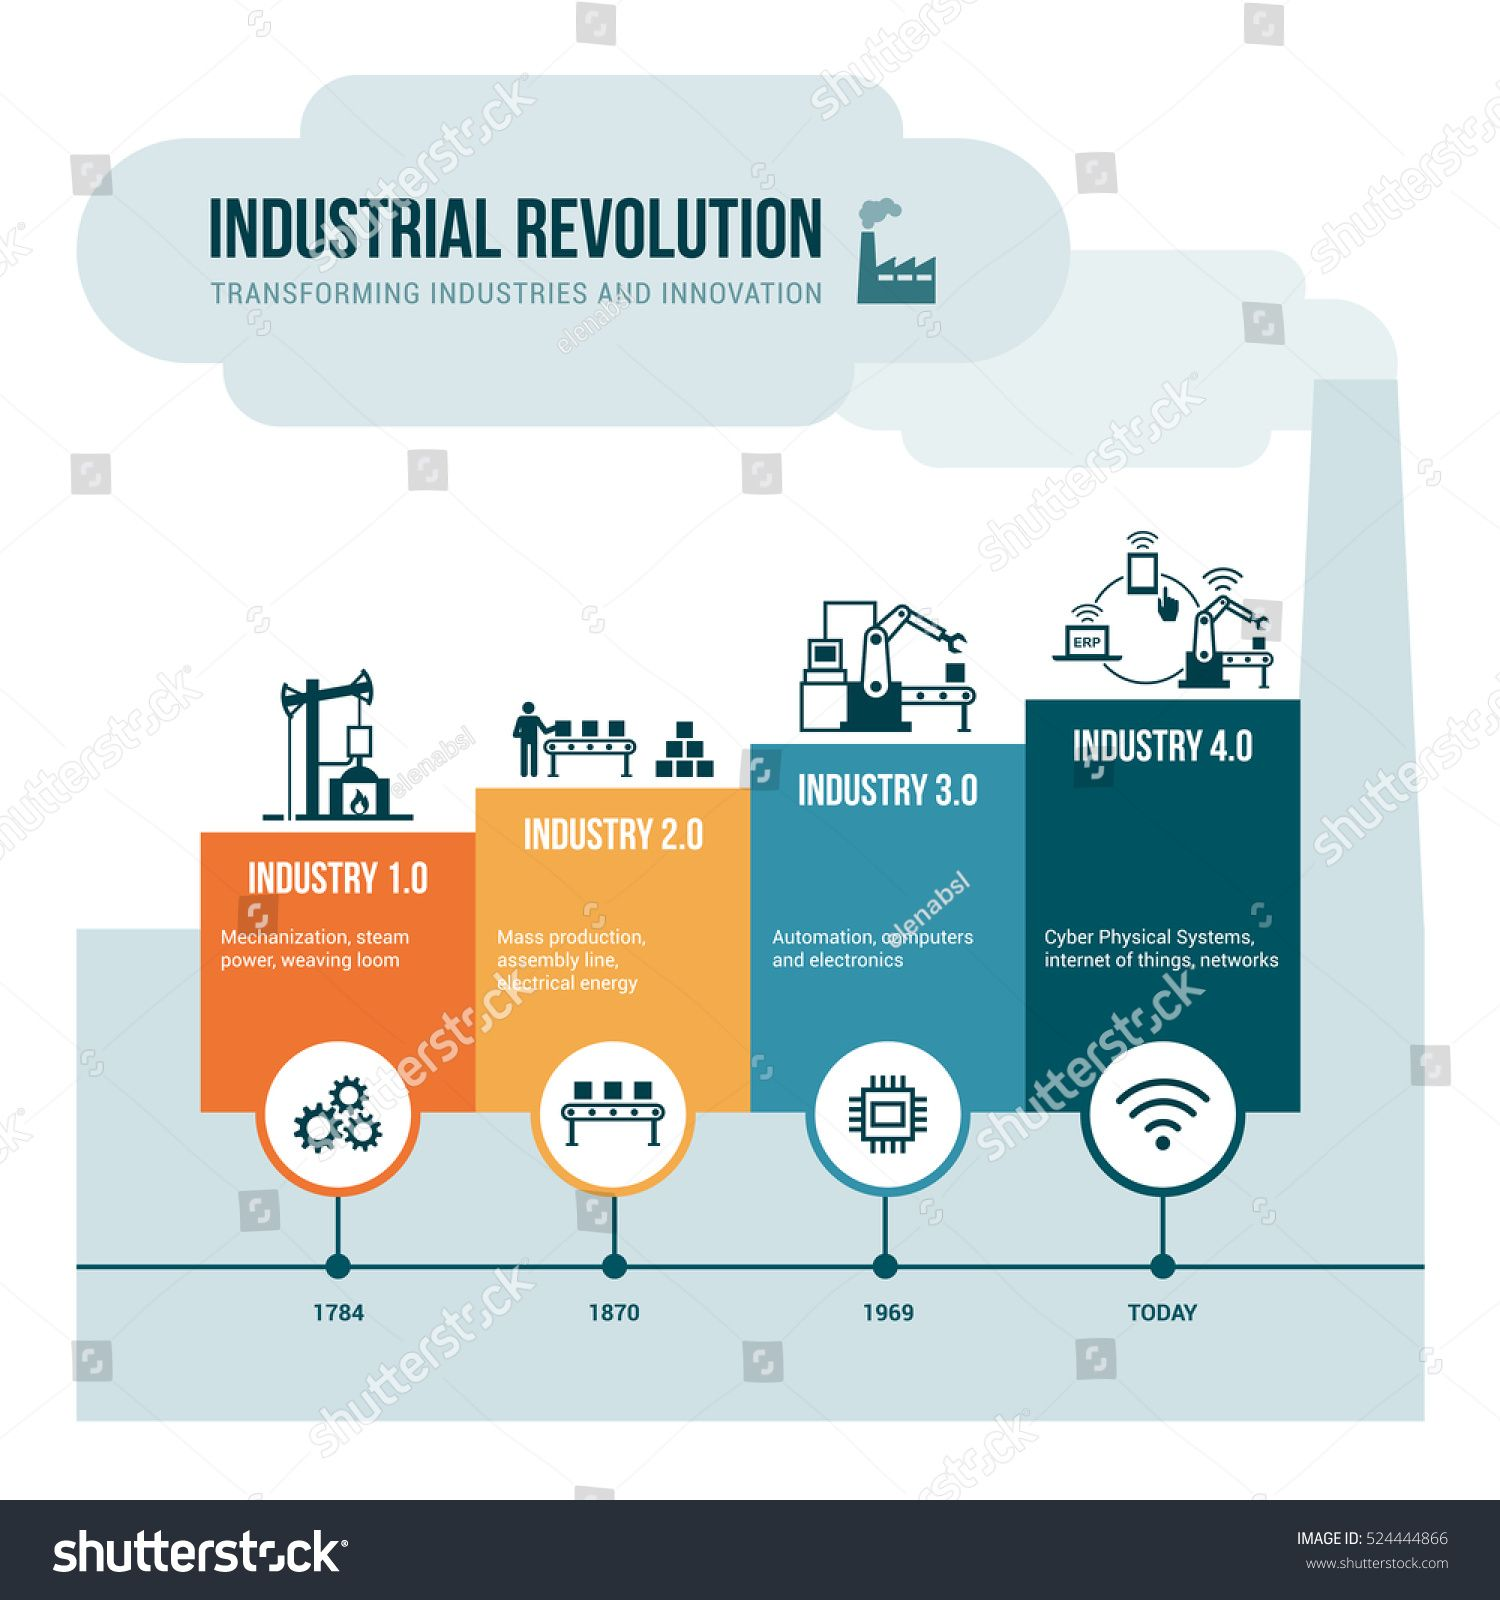 Industrial Revolution Stages From Steam Power To Cyber Physical Systems Automation An Cyber Physical System Social Media Design Graphics Industrial Revolution